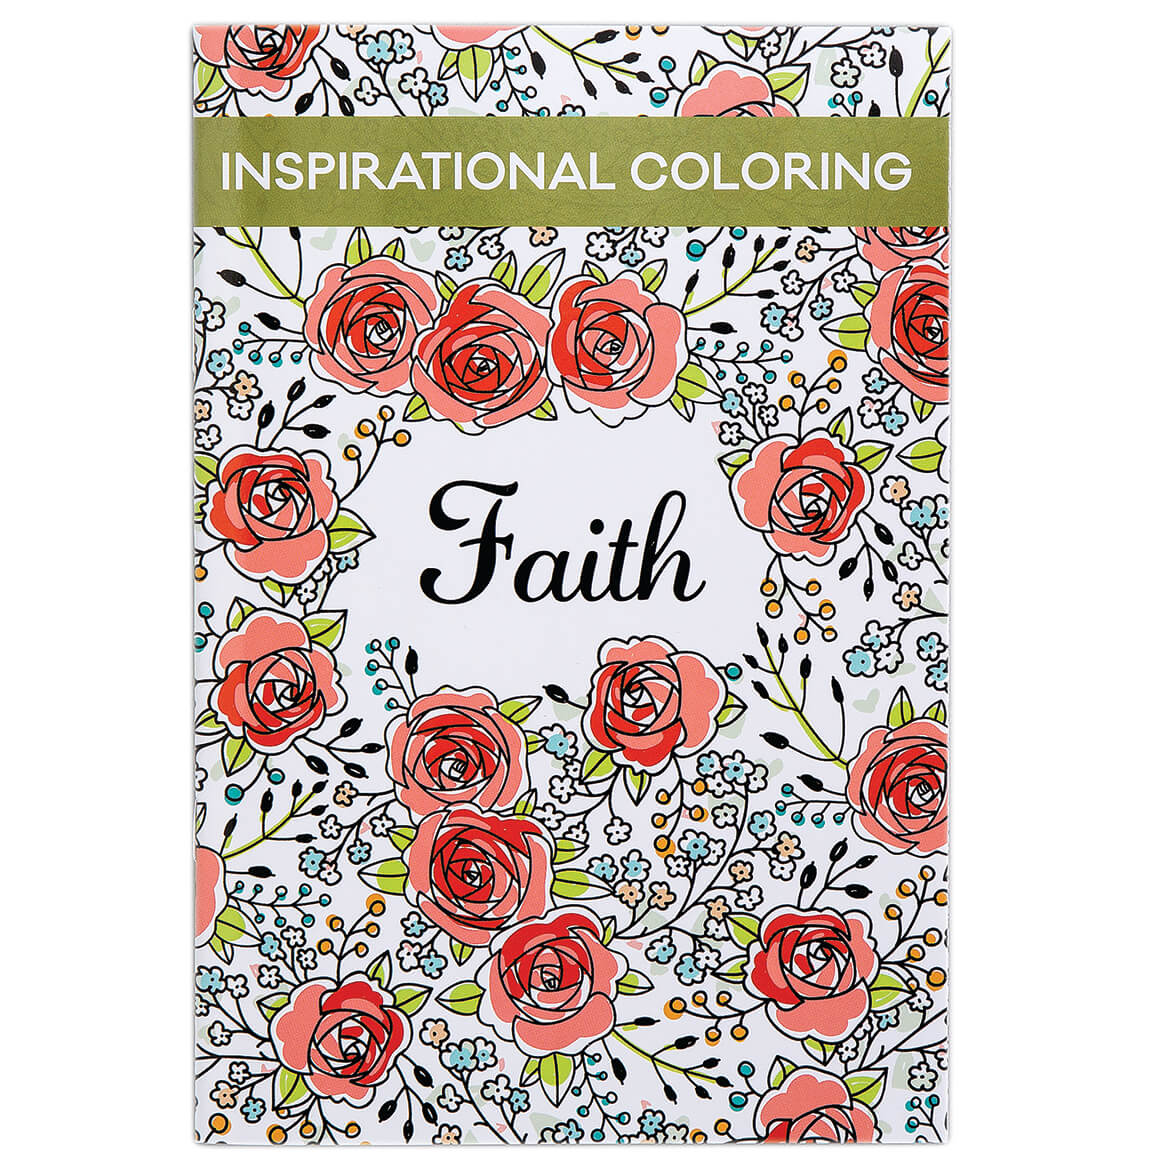 Inspirational Coloring Books Set of 5-368865